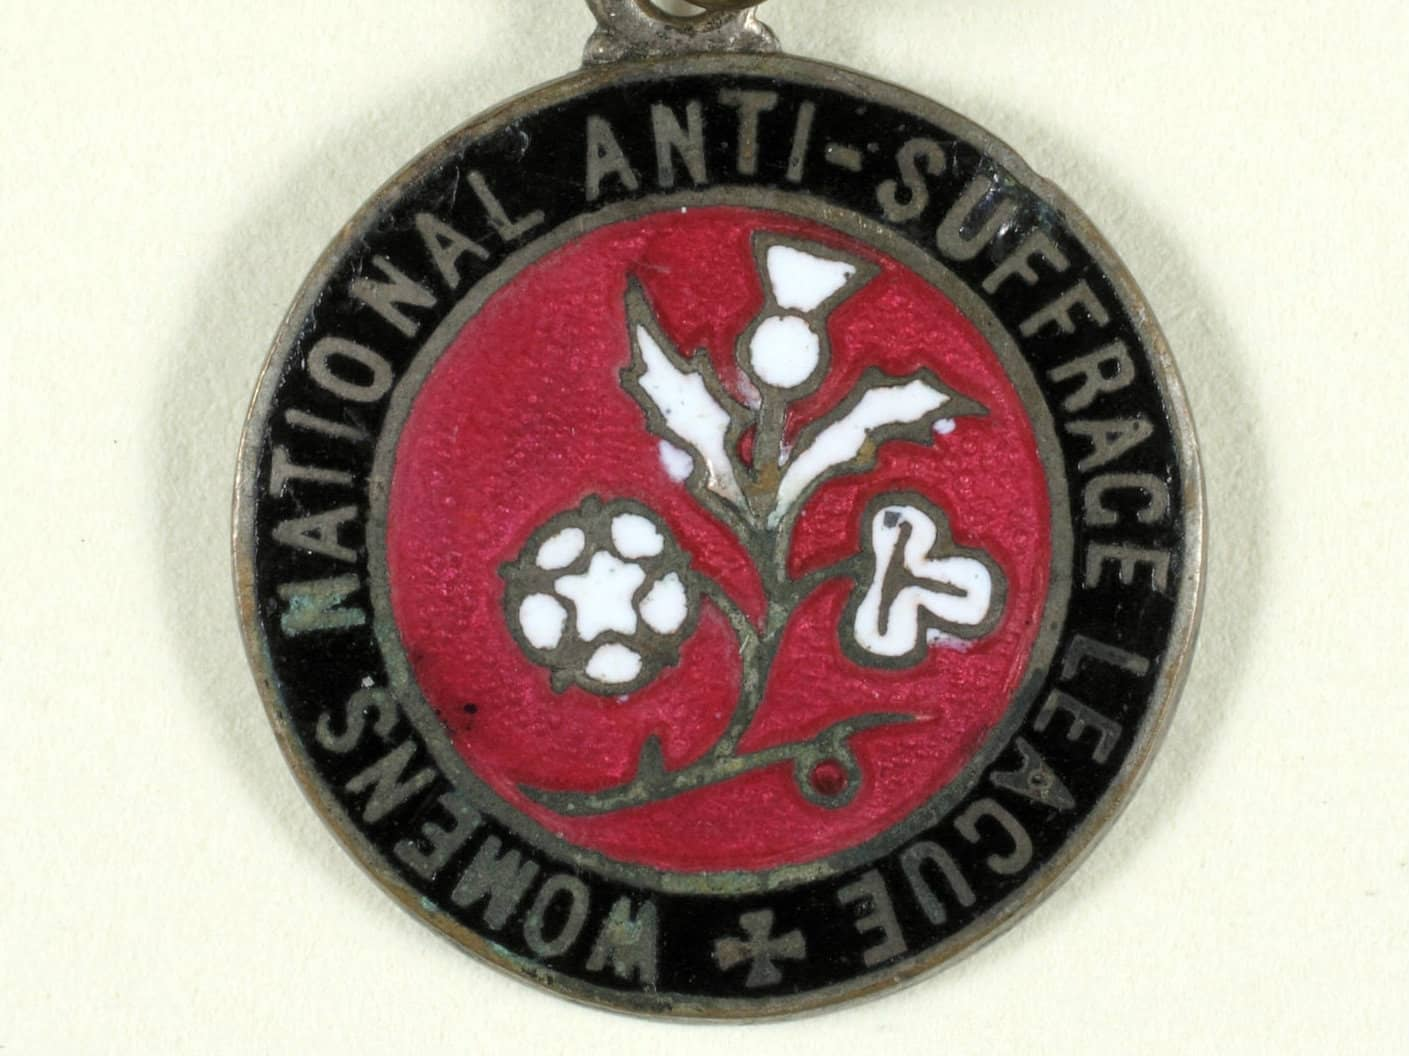 An anti-suffrage movement badge